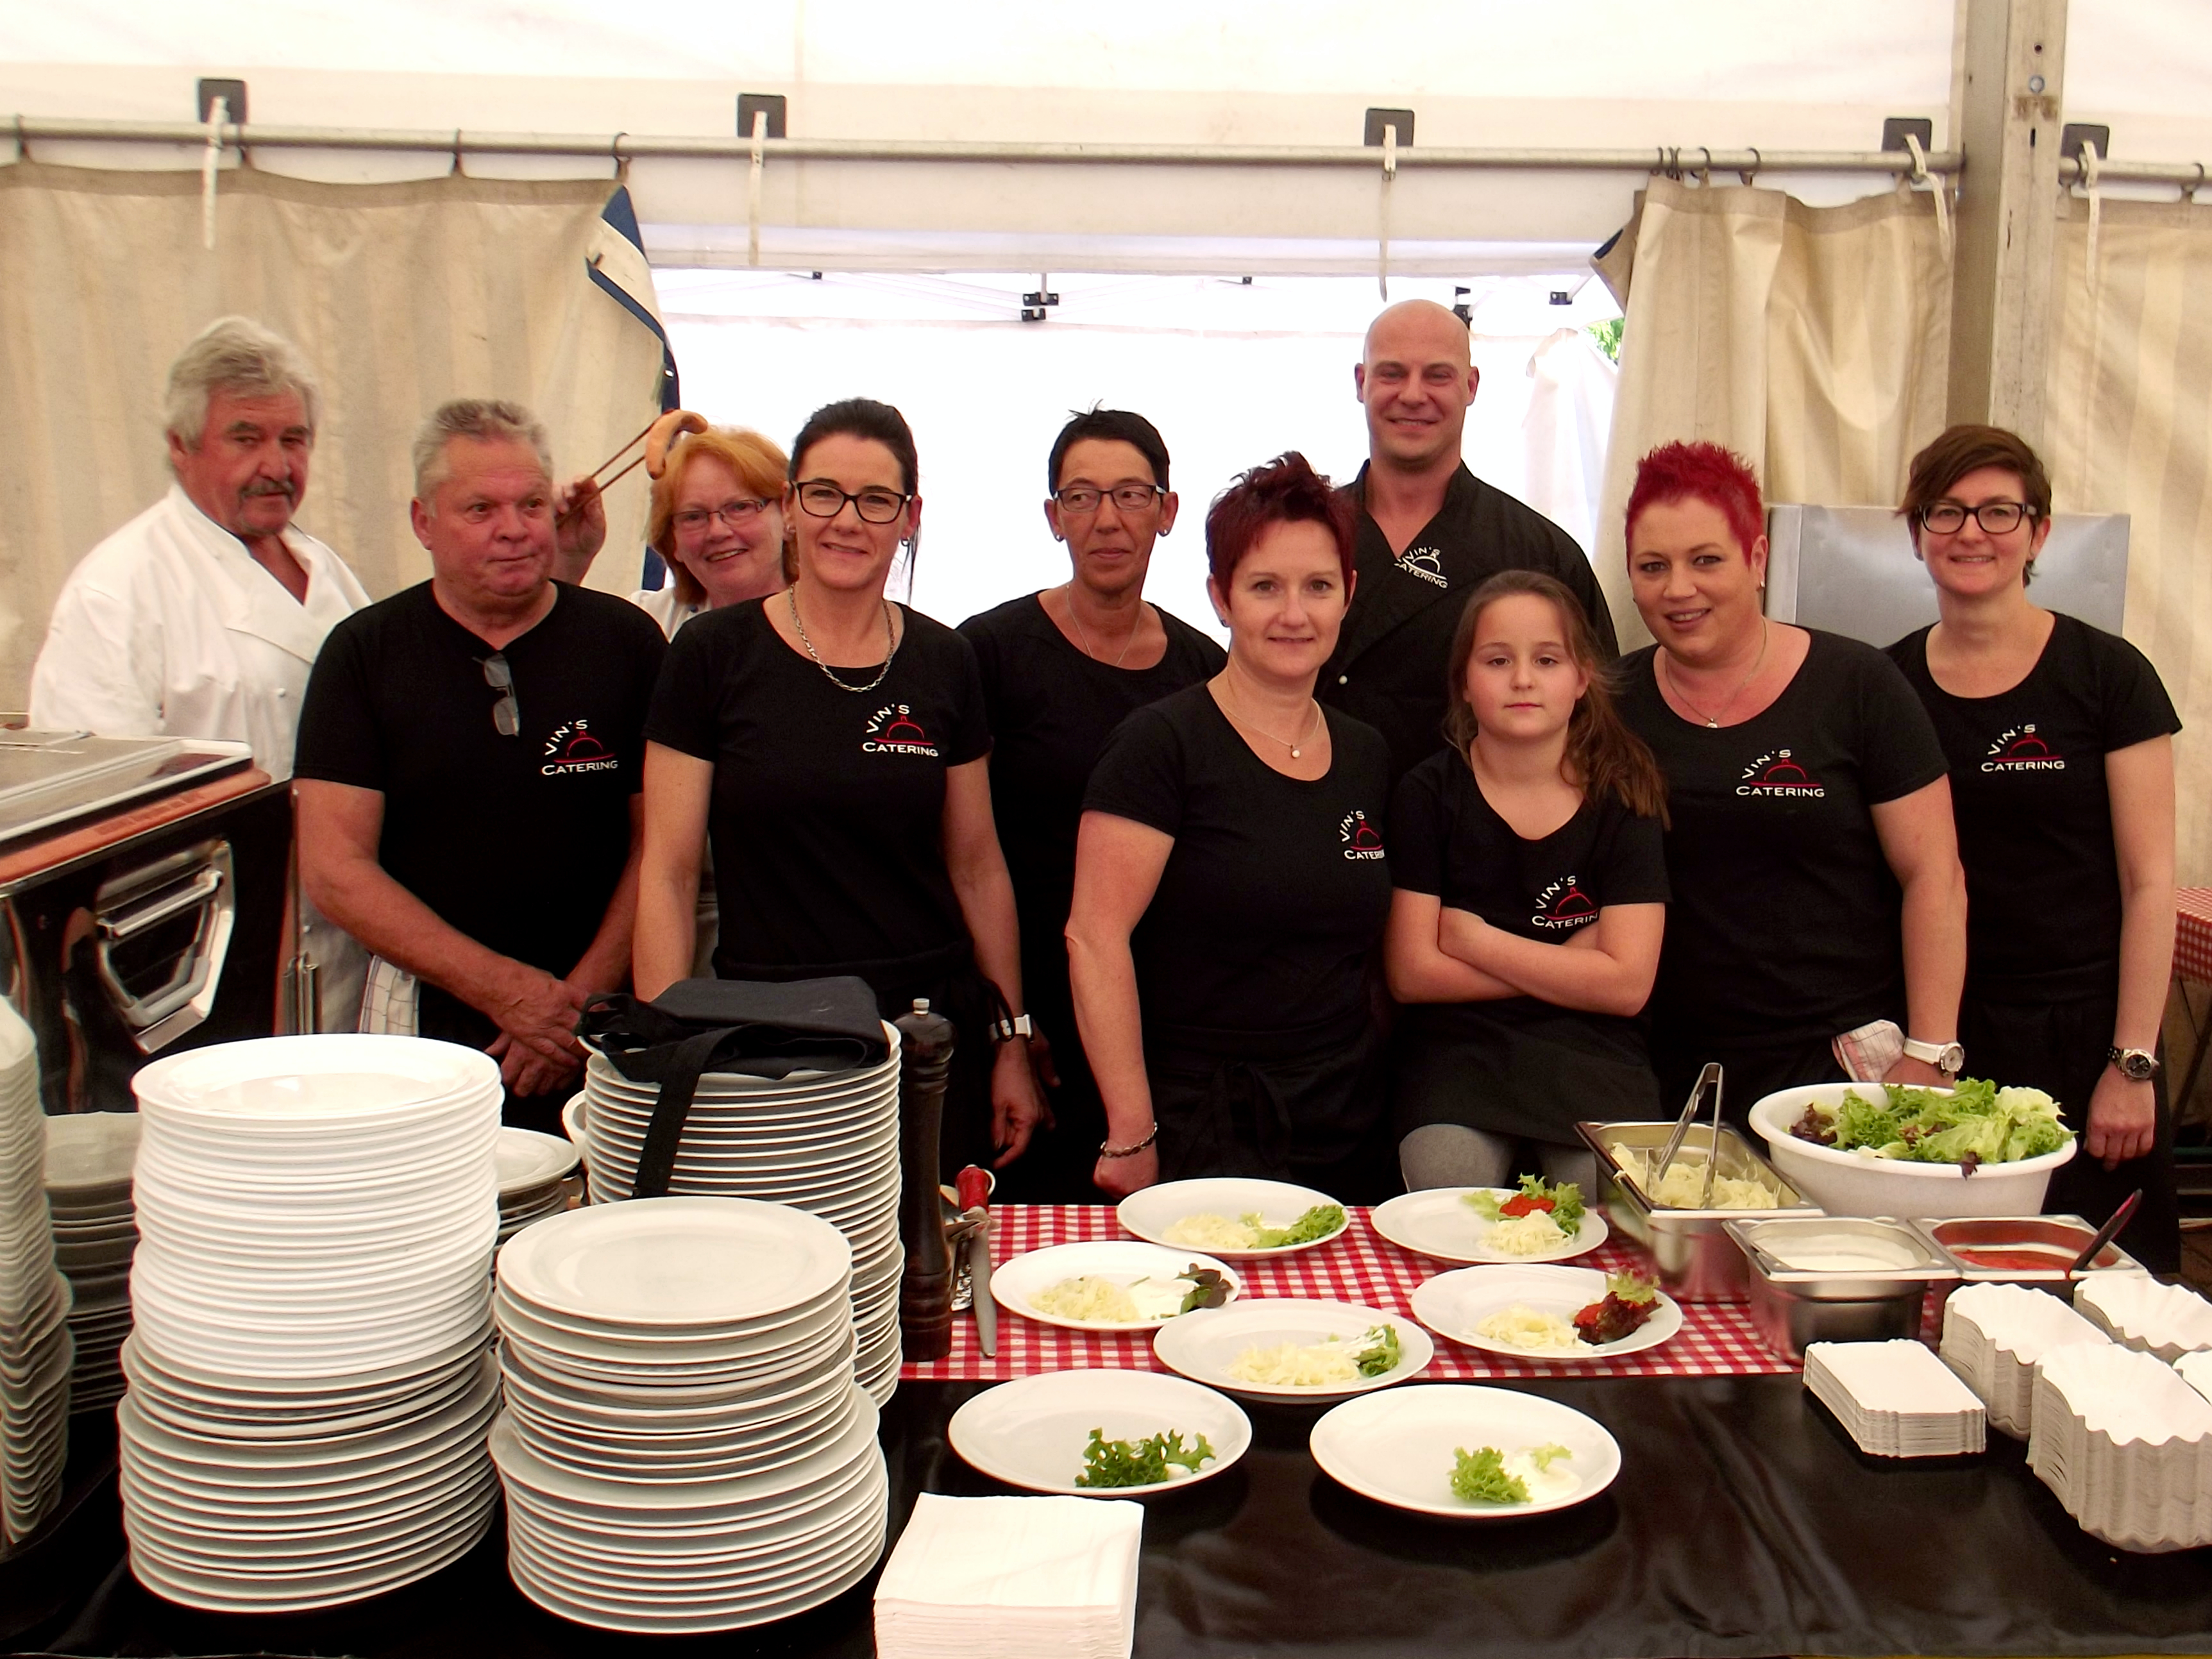 Partyservice - Catering - Vins-Catering